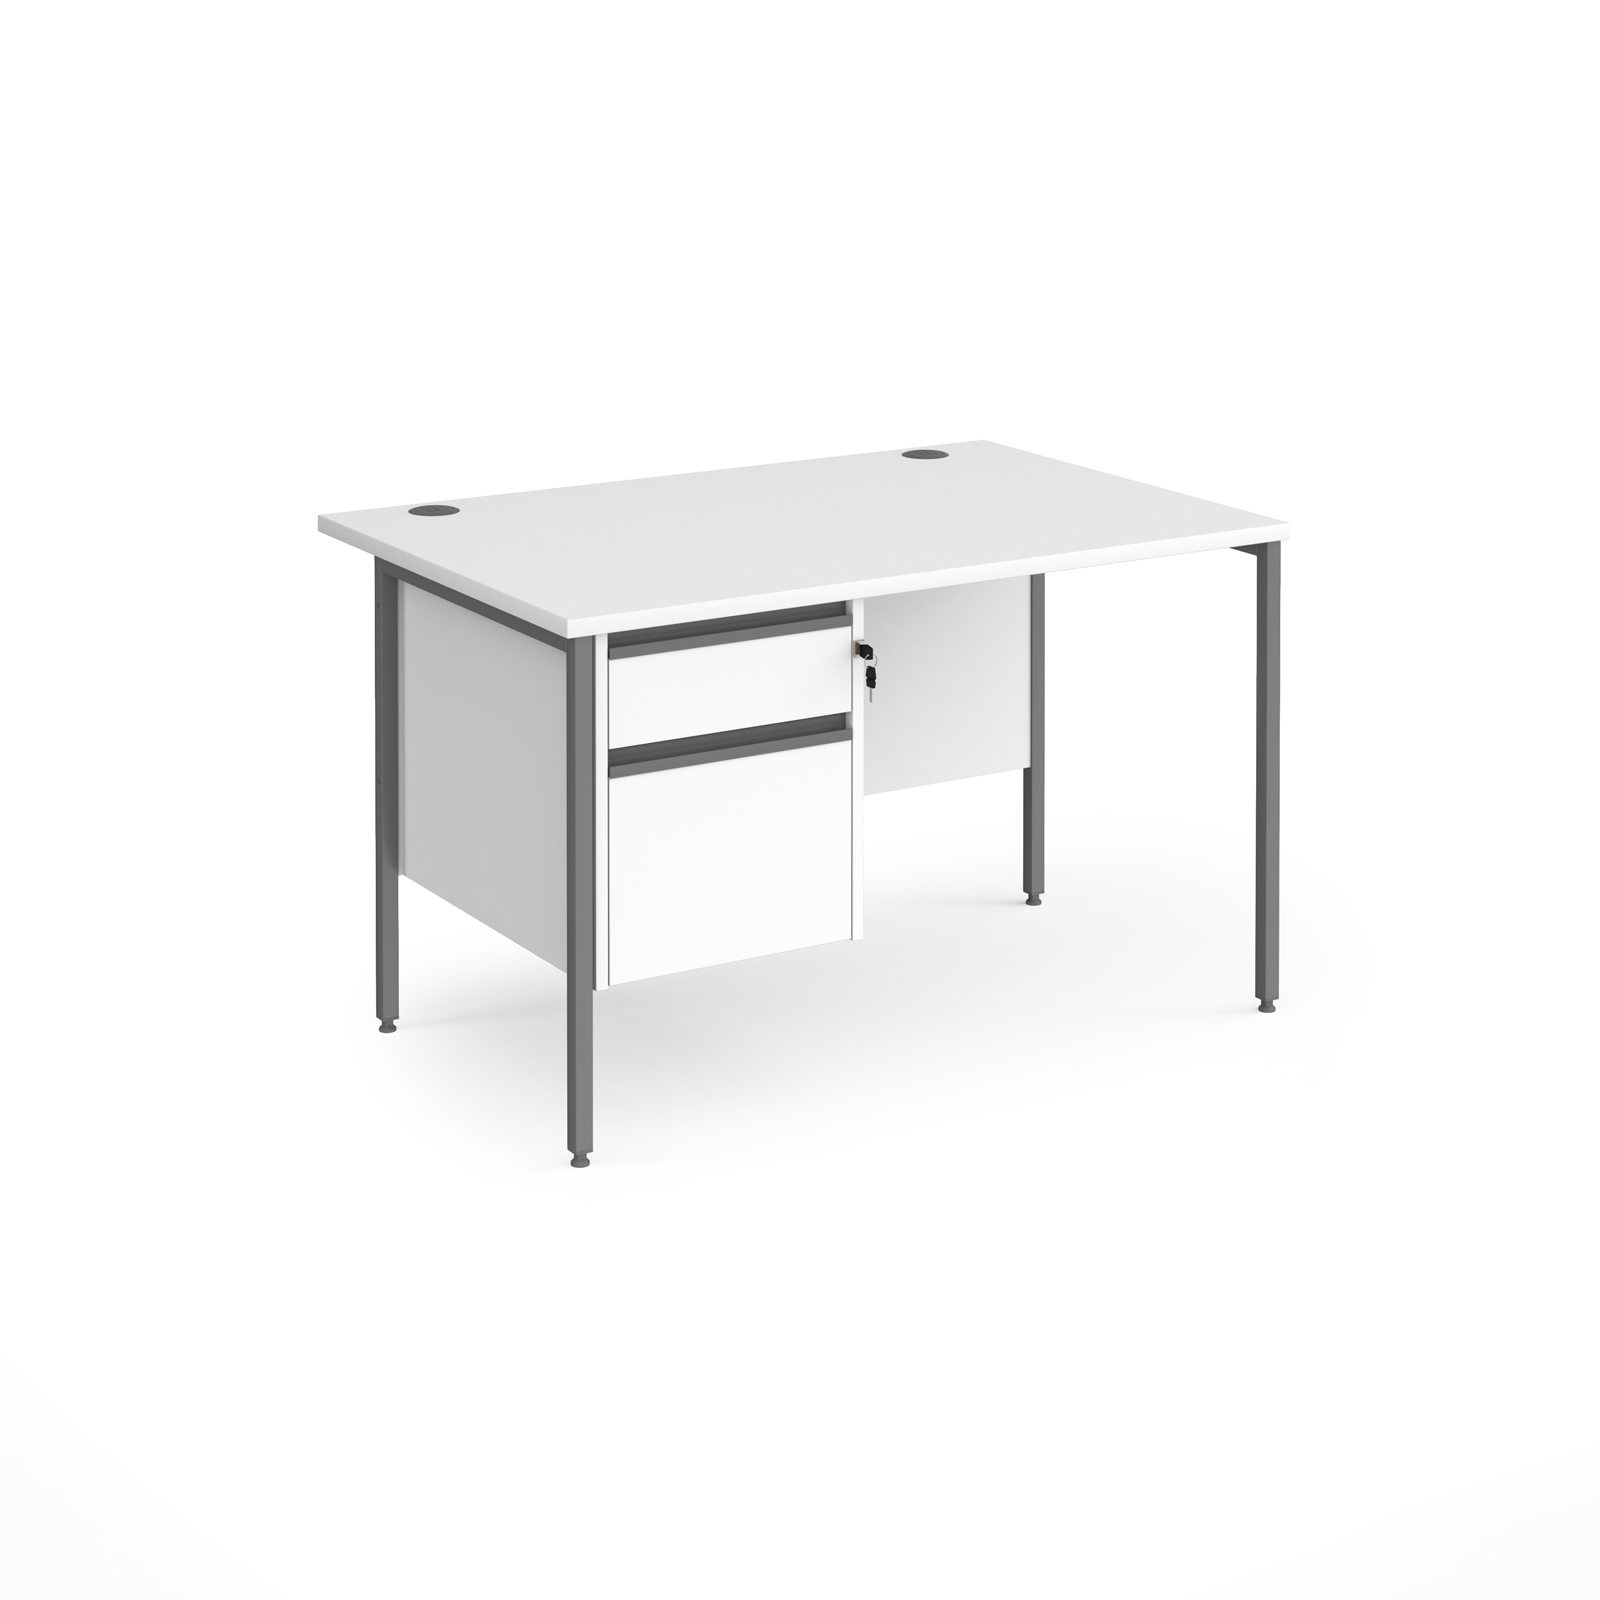 Rectangular Desks Contract 25 straight desk with 2 drawer pedestal and graphite H-Frame leg 1200mm x 800mm - white top